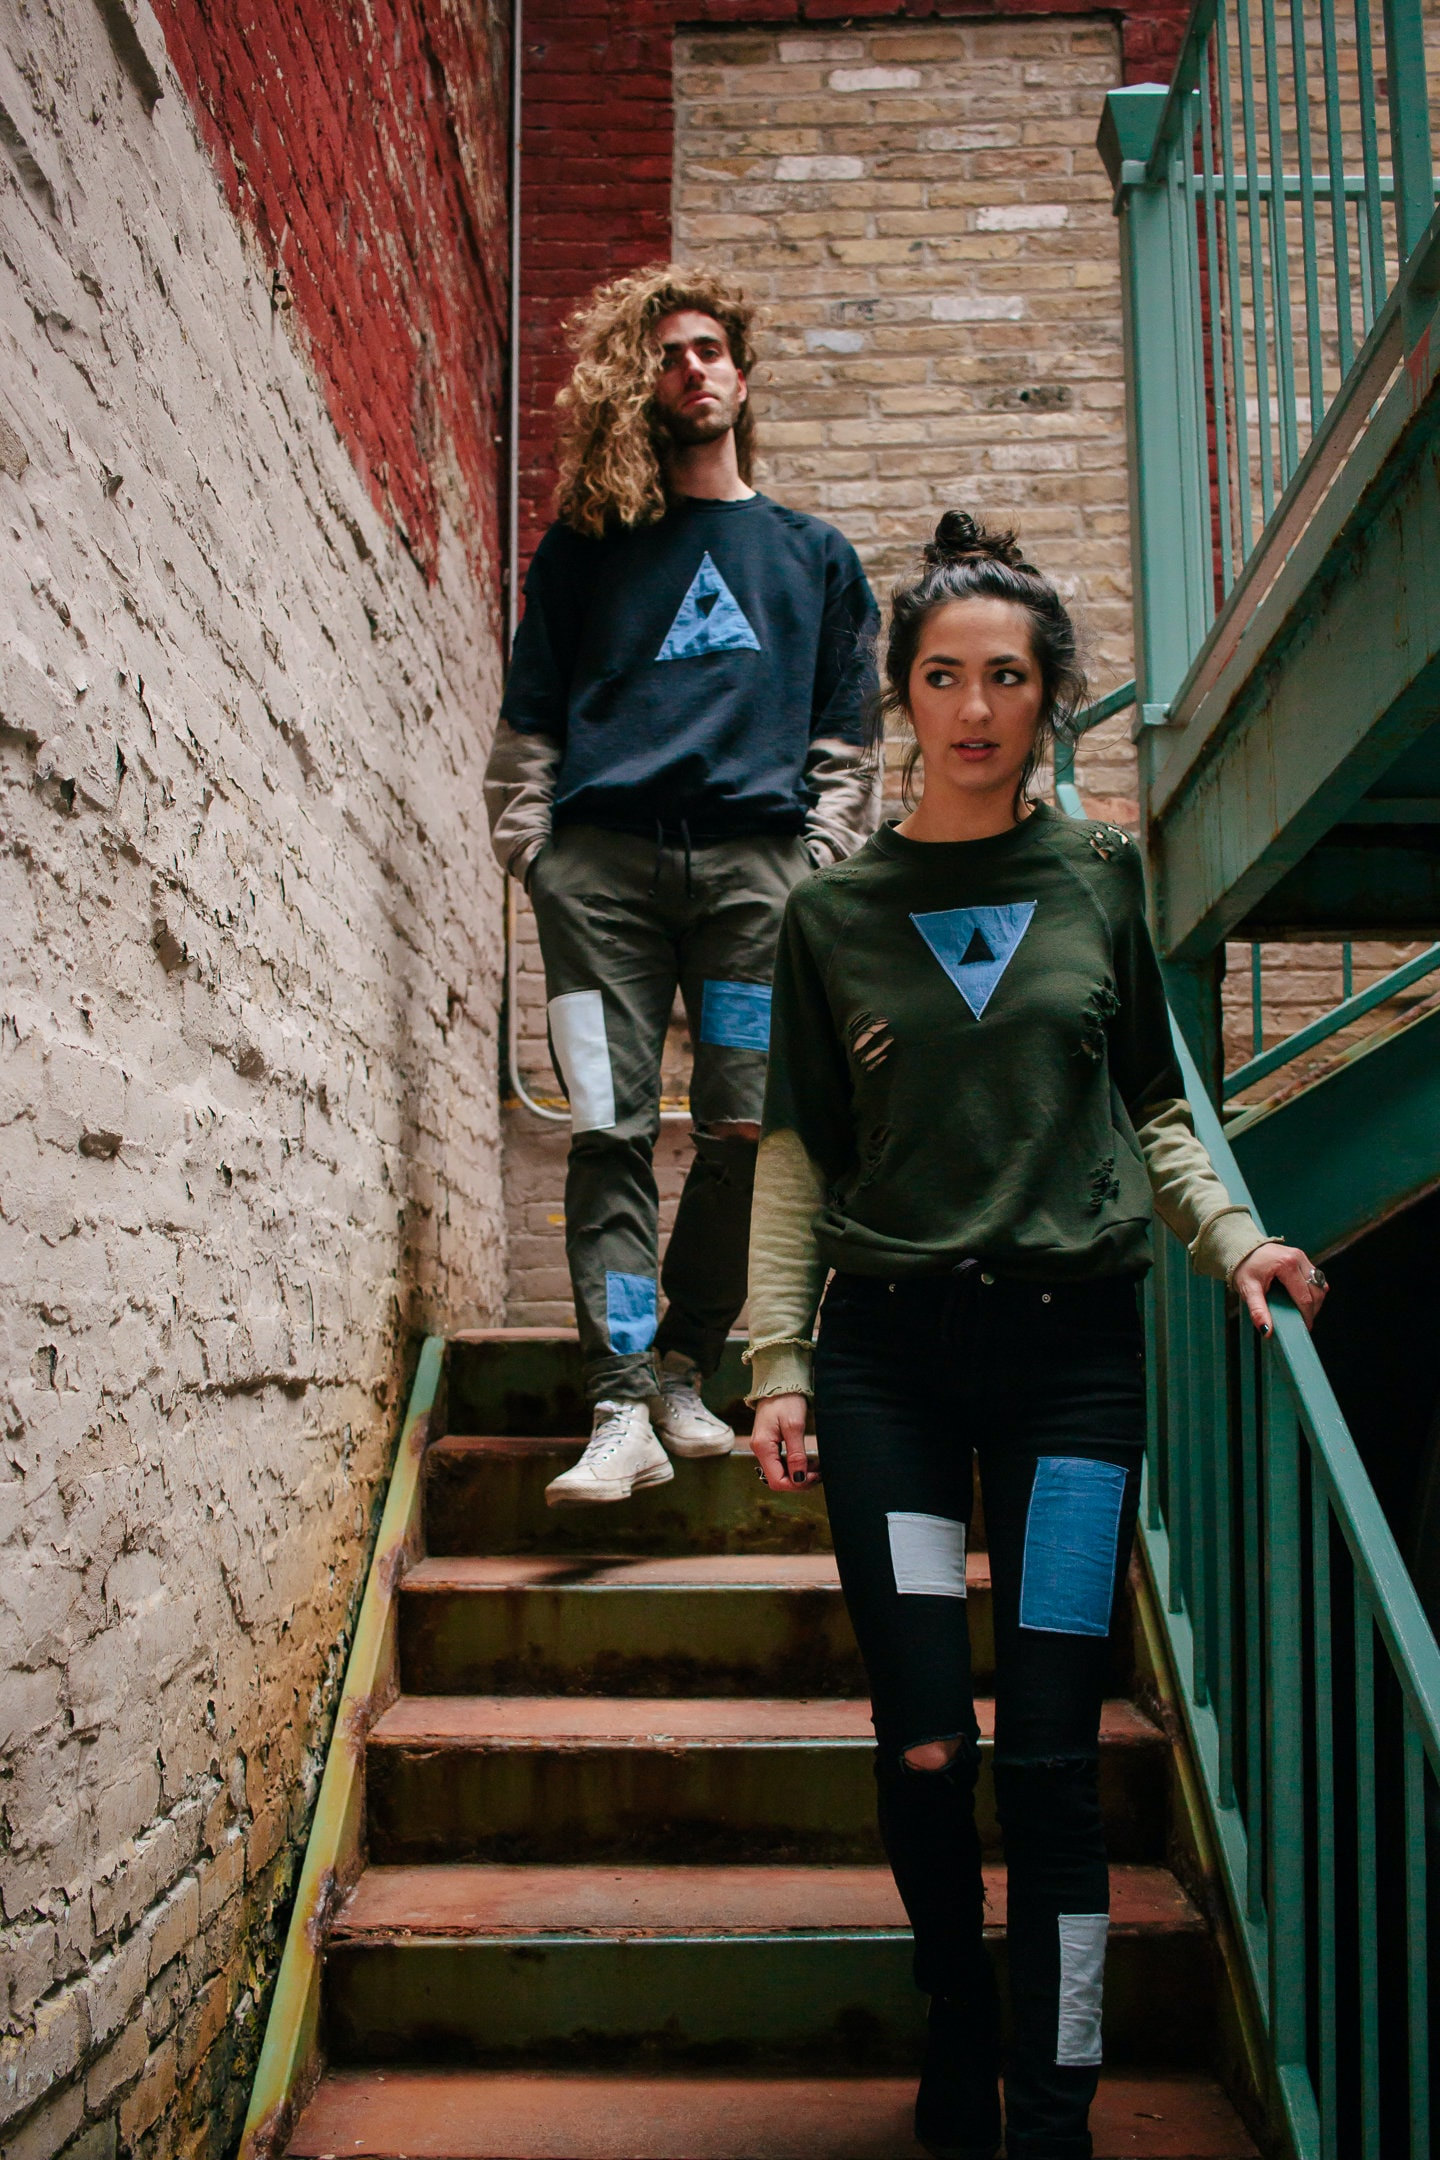 A young woman and a young man walking down the stairs in an old brick stairwell